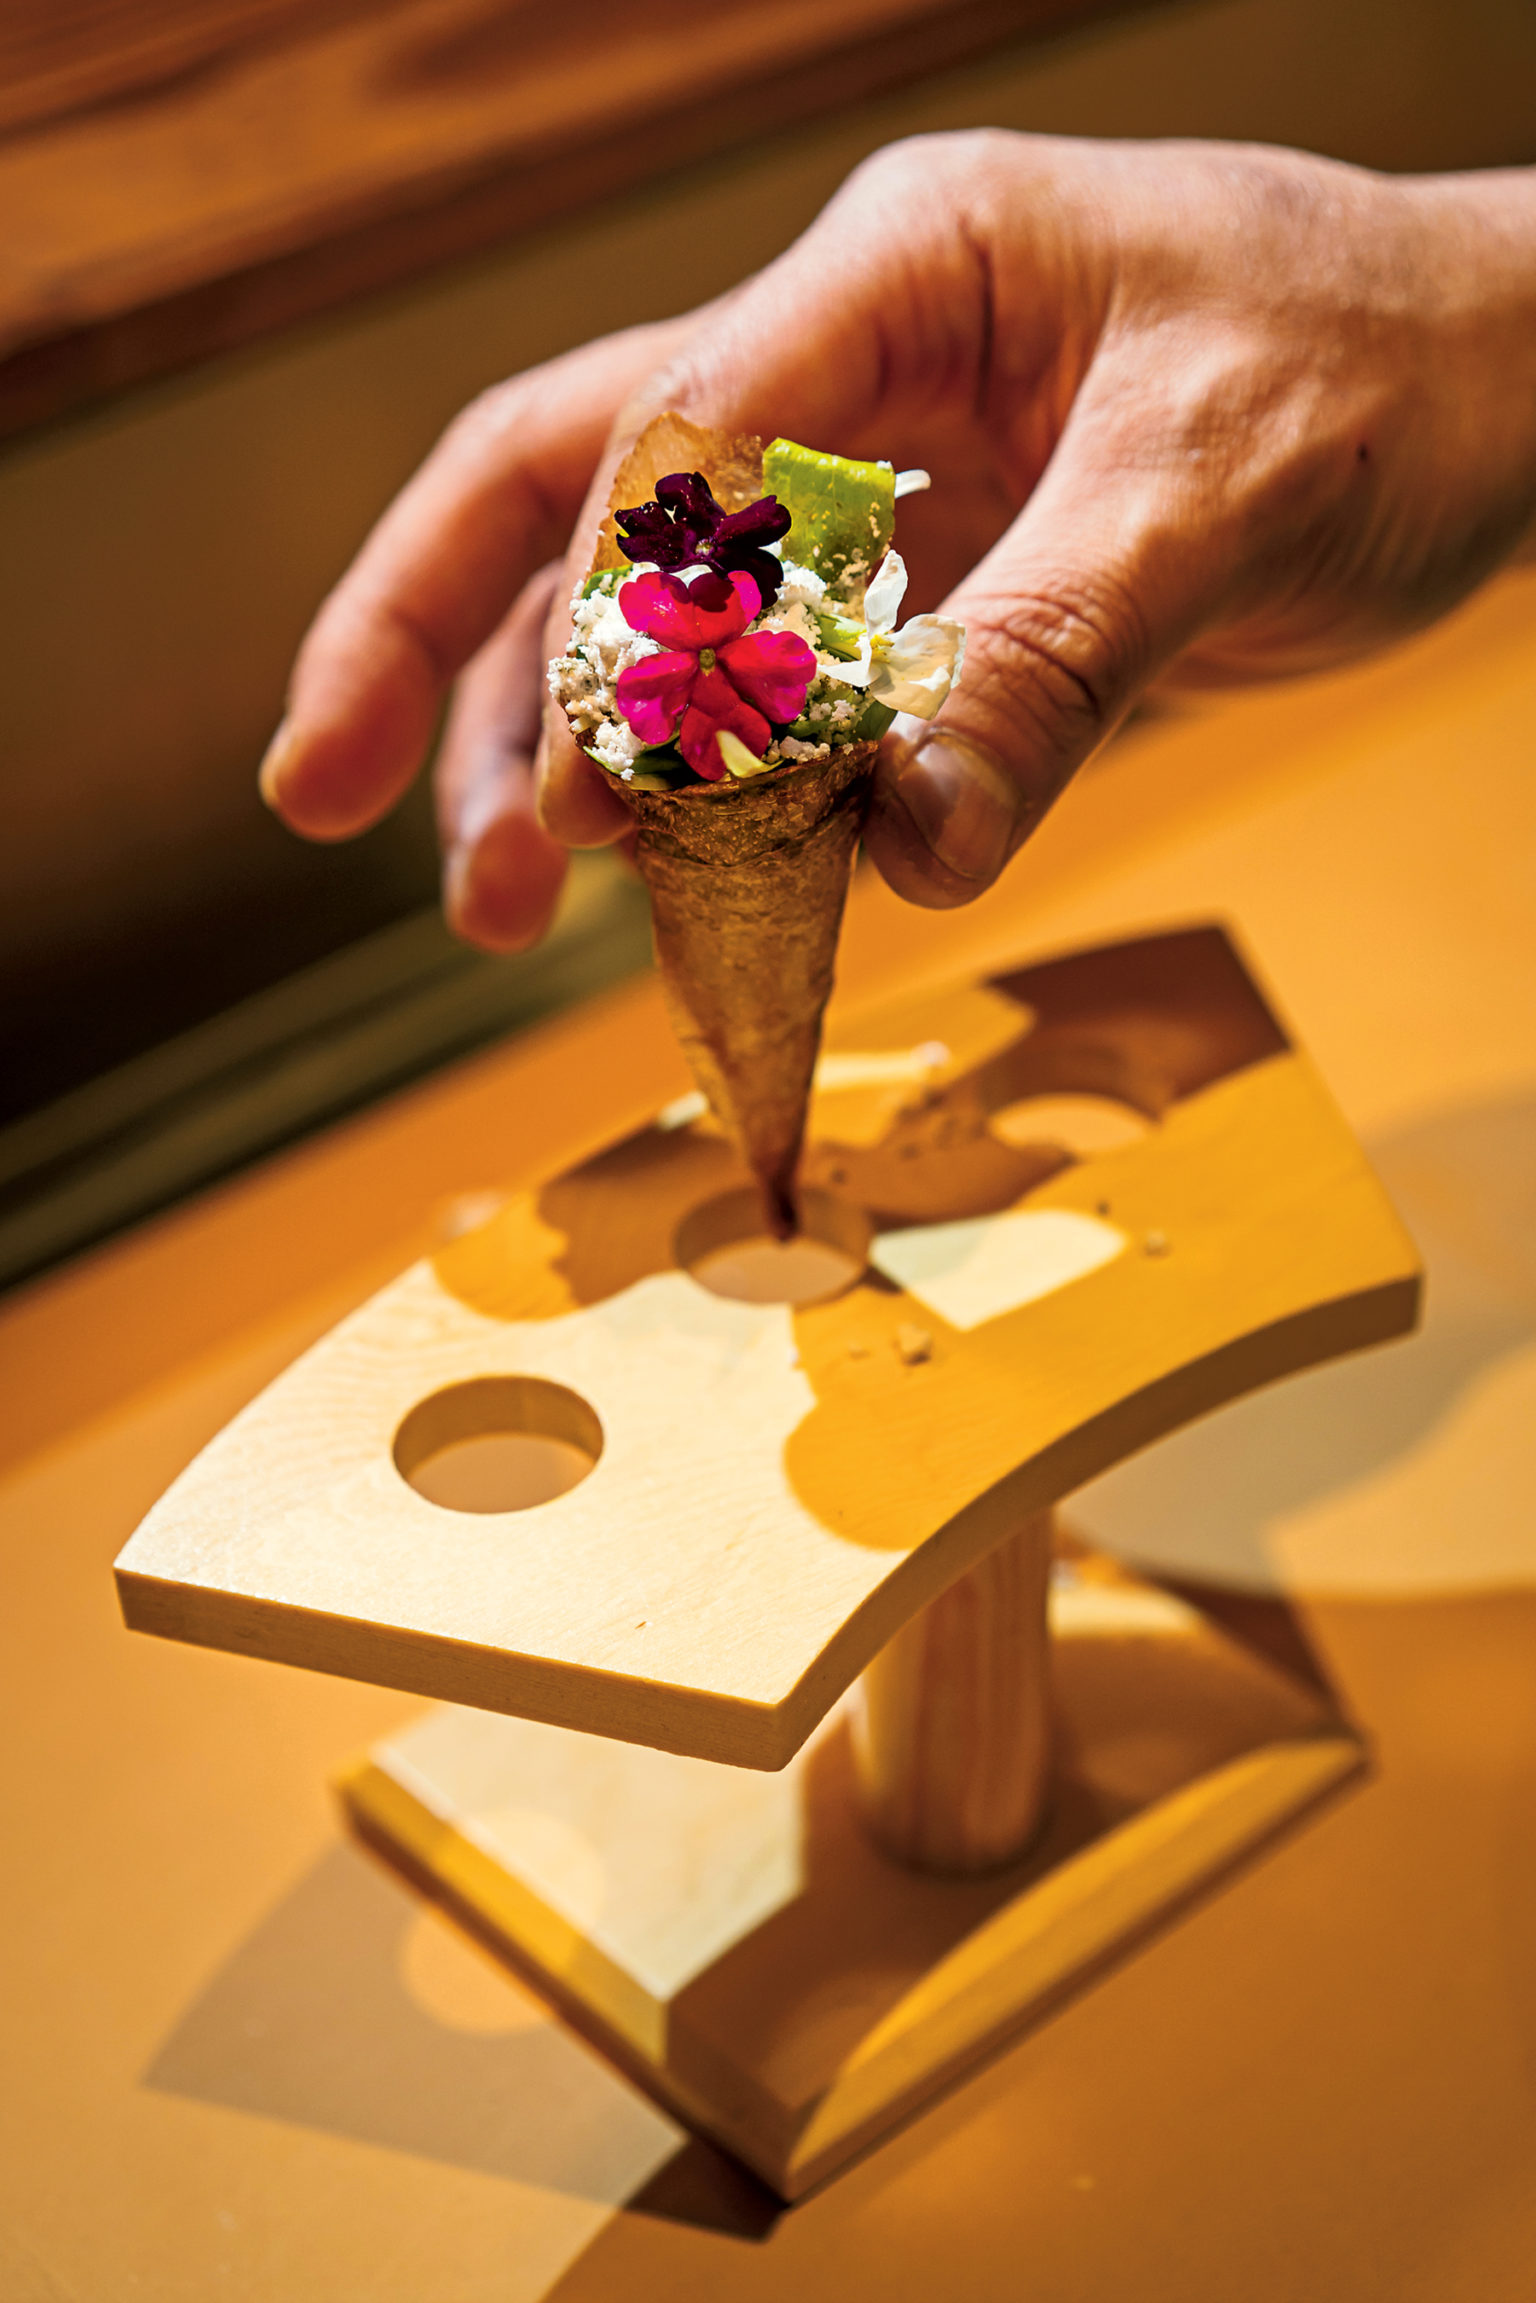 It takes a day to make delicate cones of potato starch, soy, and yuzu, which are used instead of nori for hand rolls stuffed with baby lettuce, orange powder, and edible flowers.